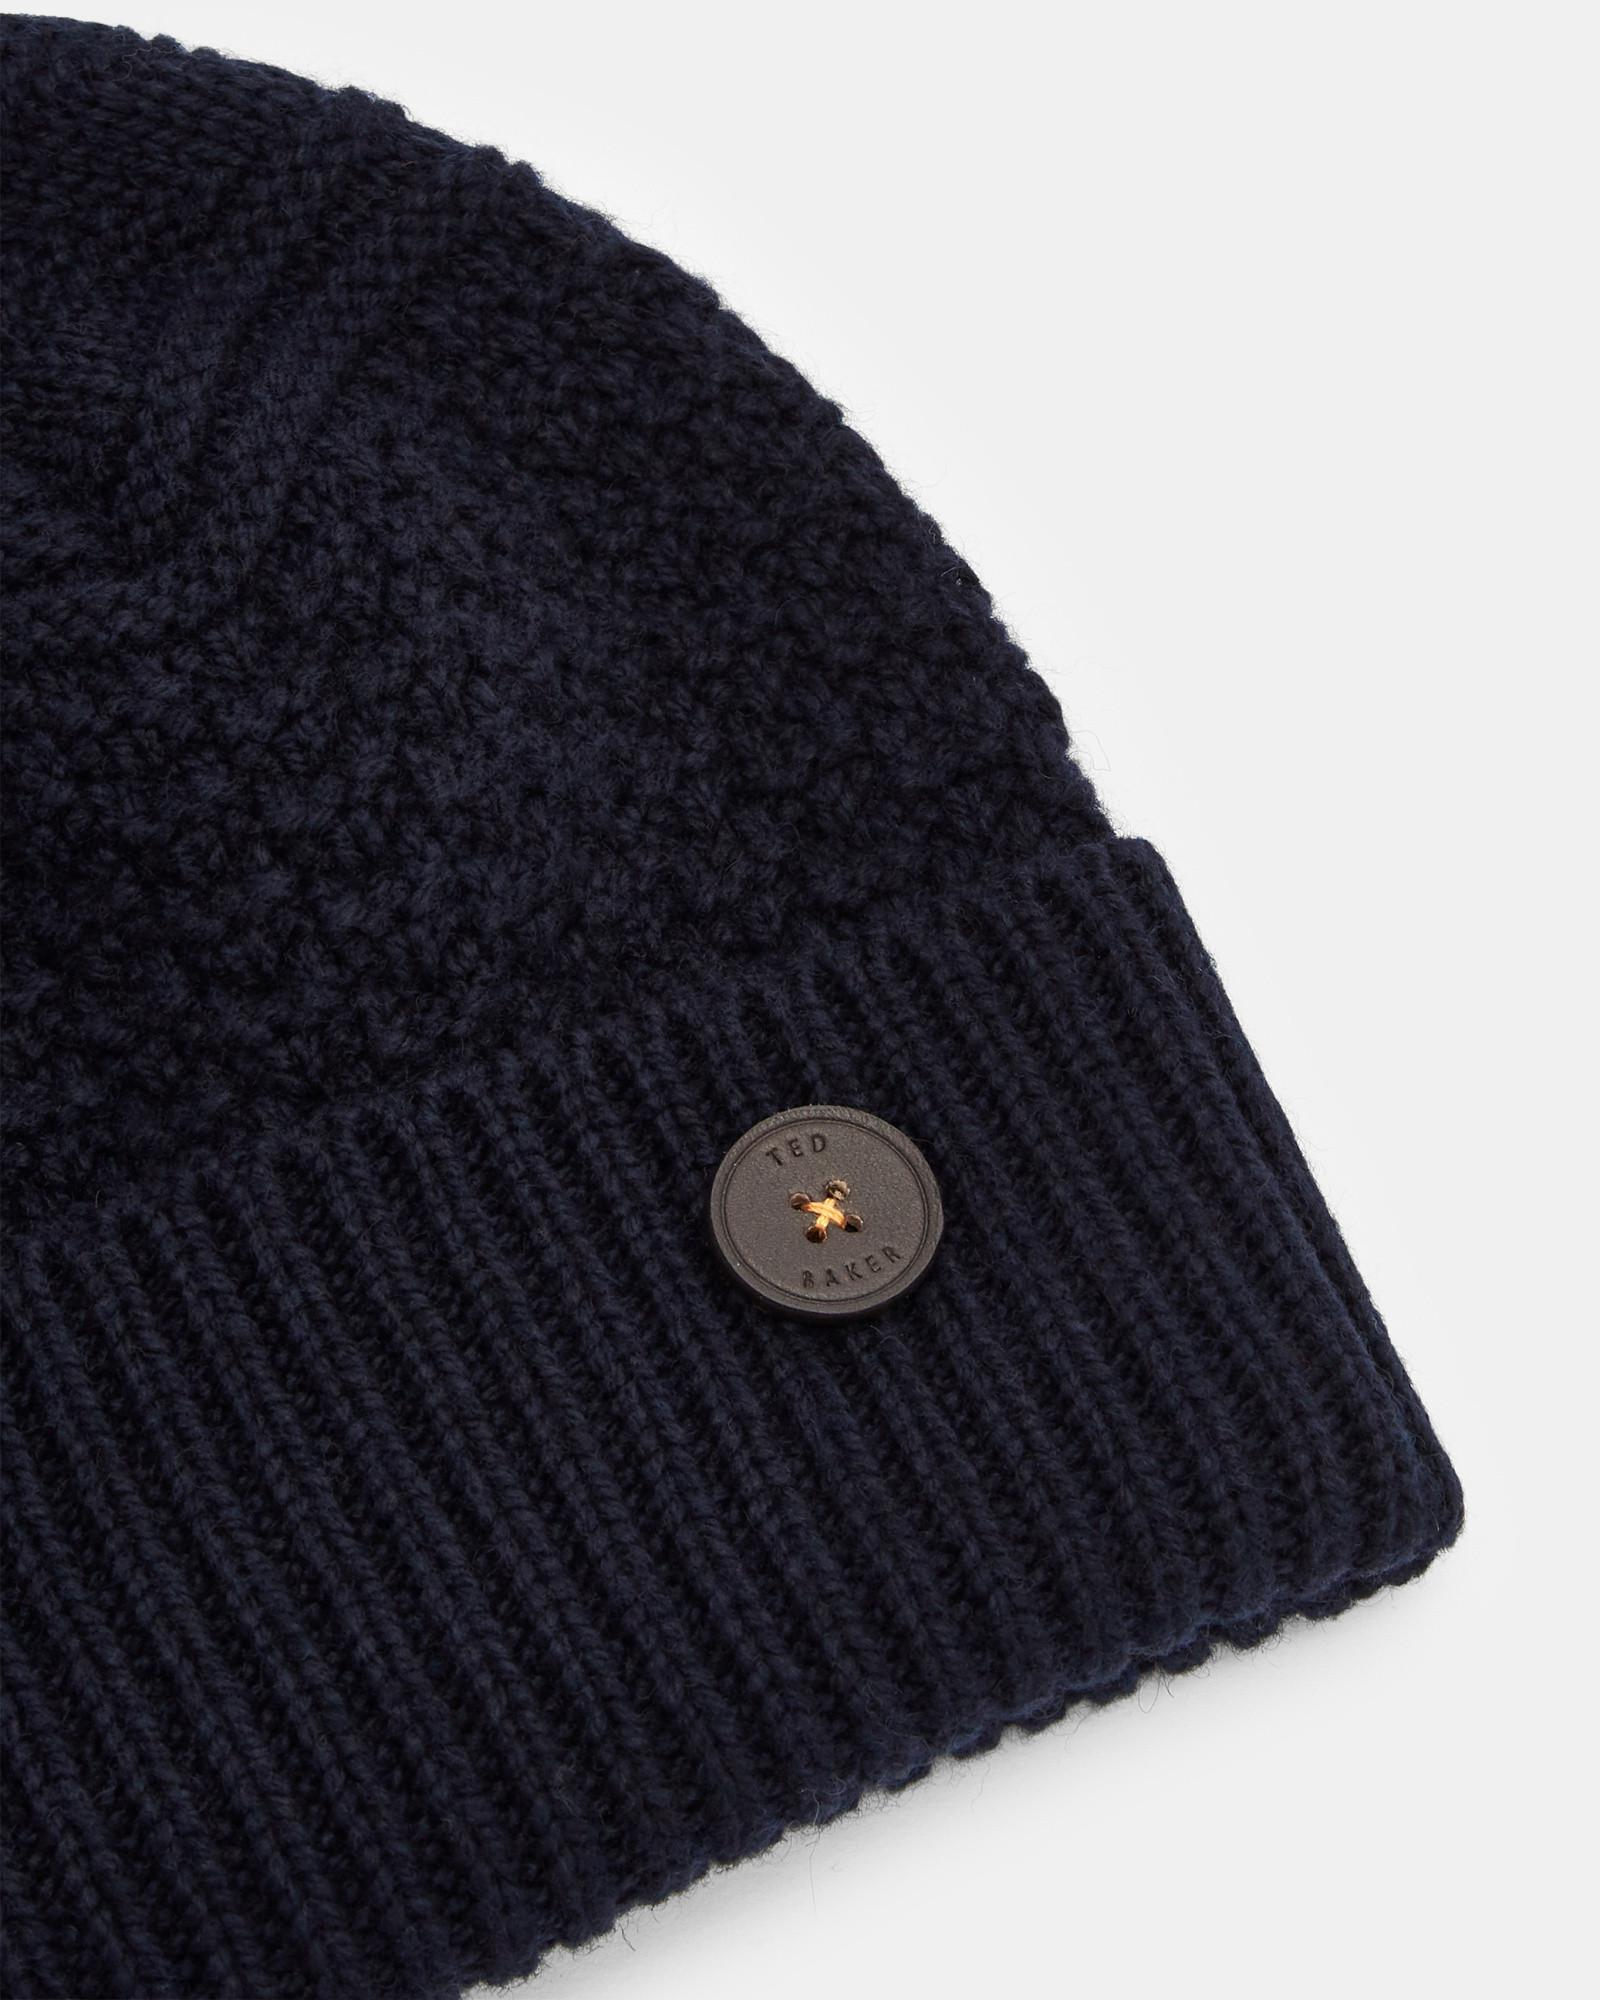 10c71ad7dd5 Lyst - Ted Baker Multi Stitch Cashmere Hat in Blue for Men